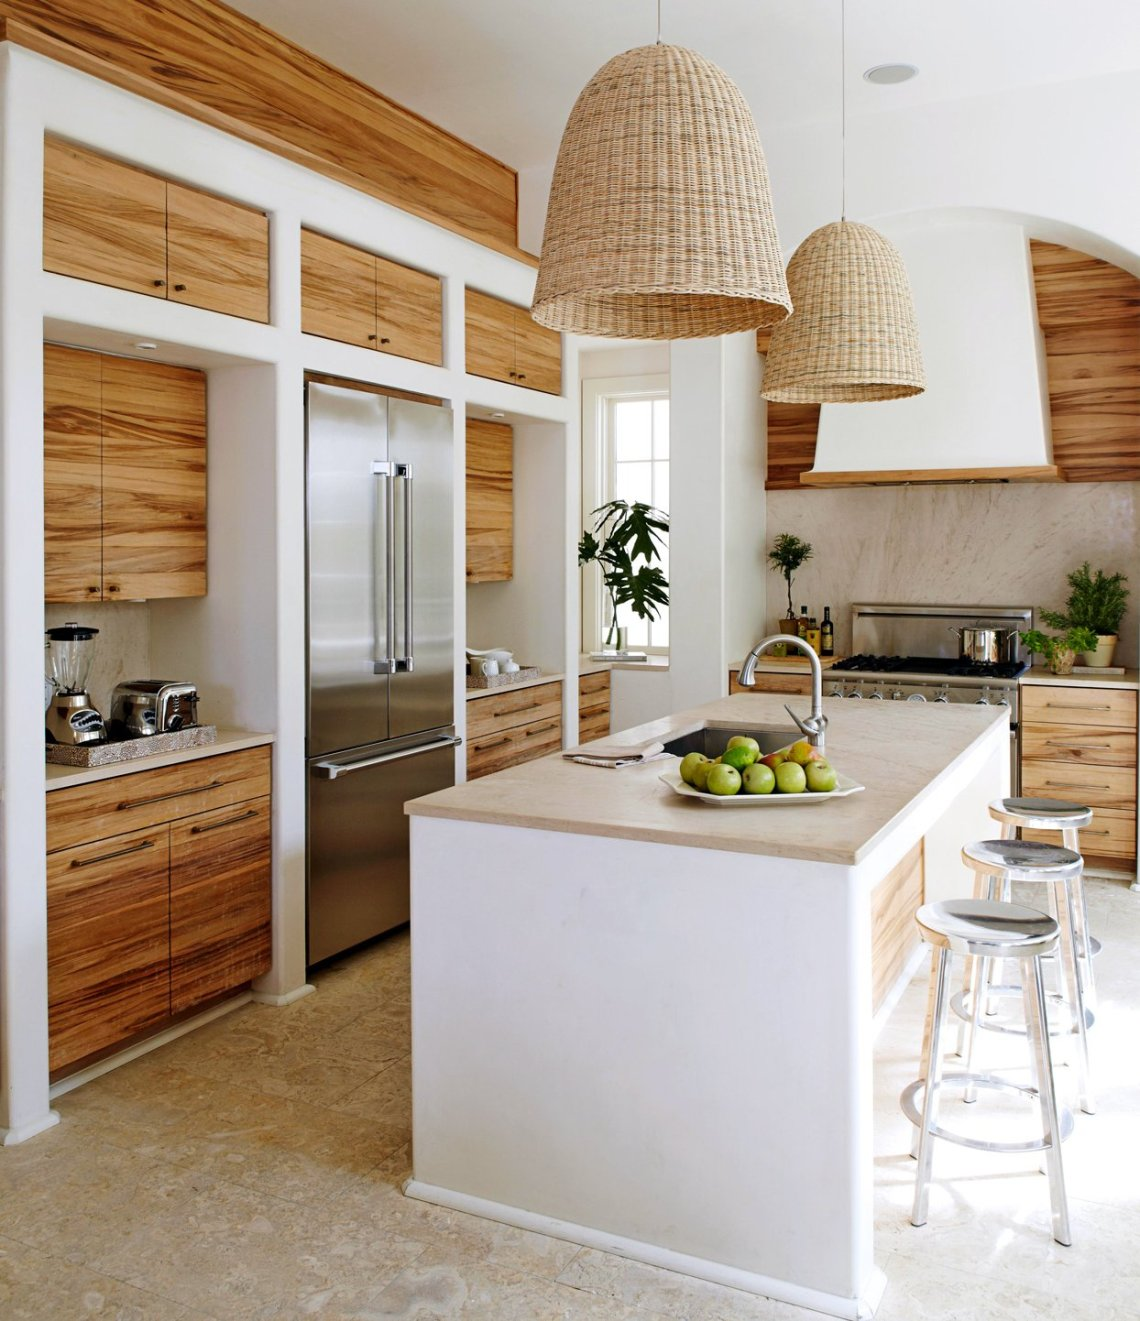 Top 2021 Kitchen Trends with Long-Lasting Style - London Daily